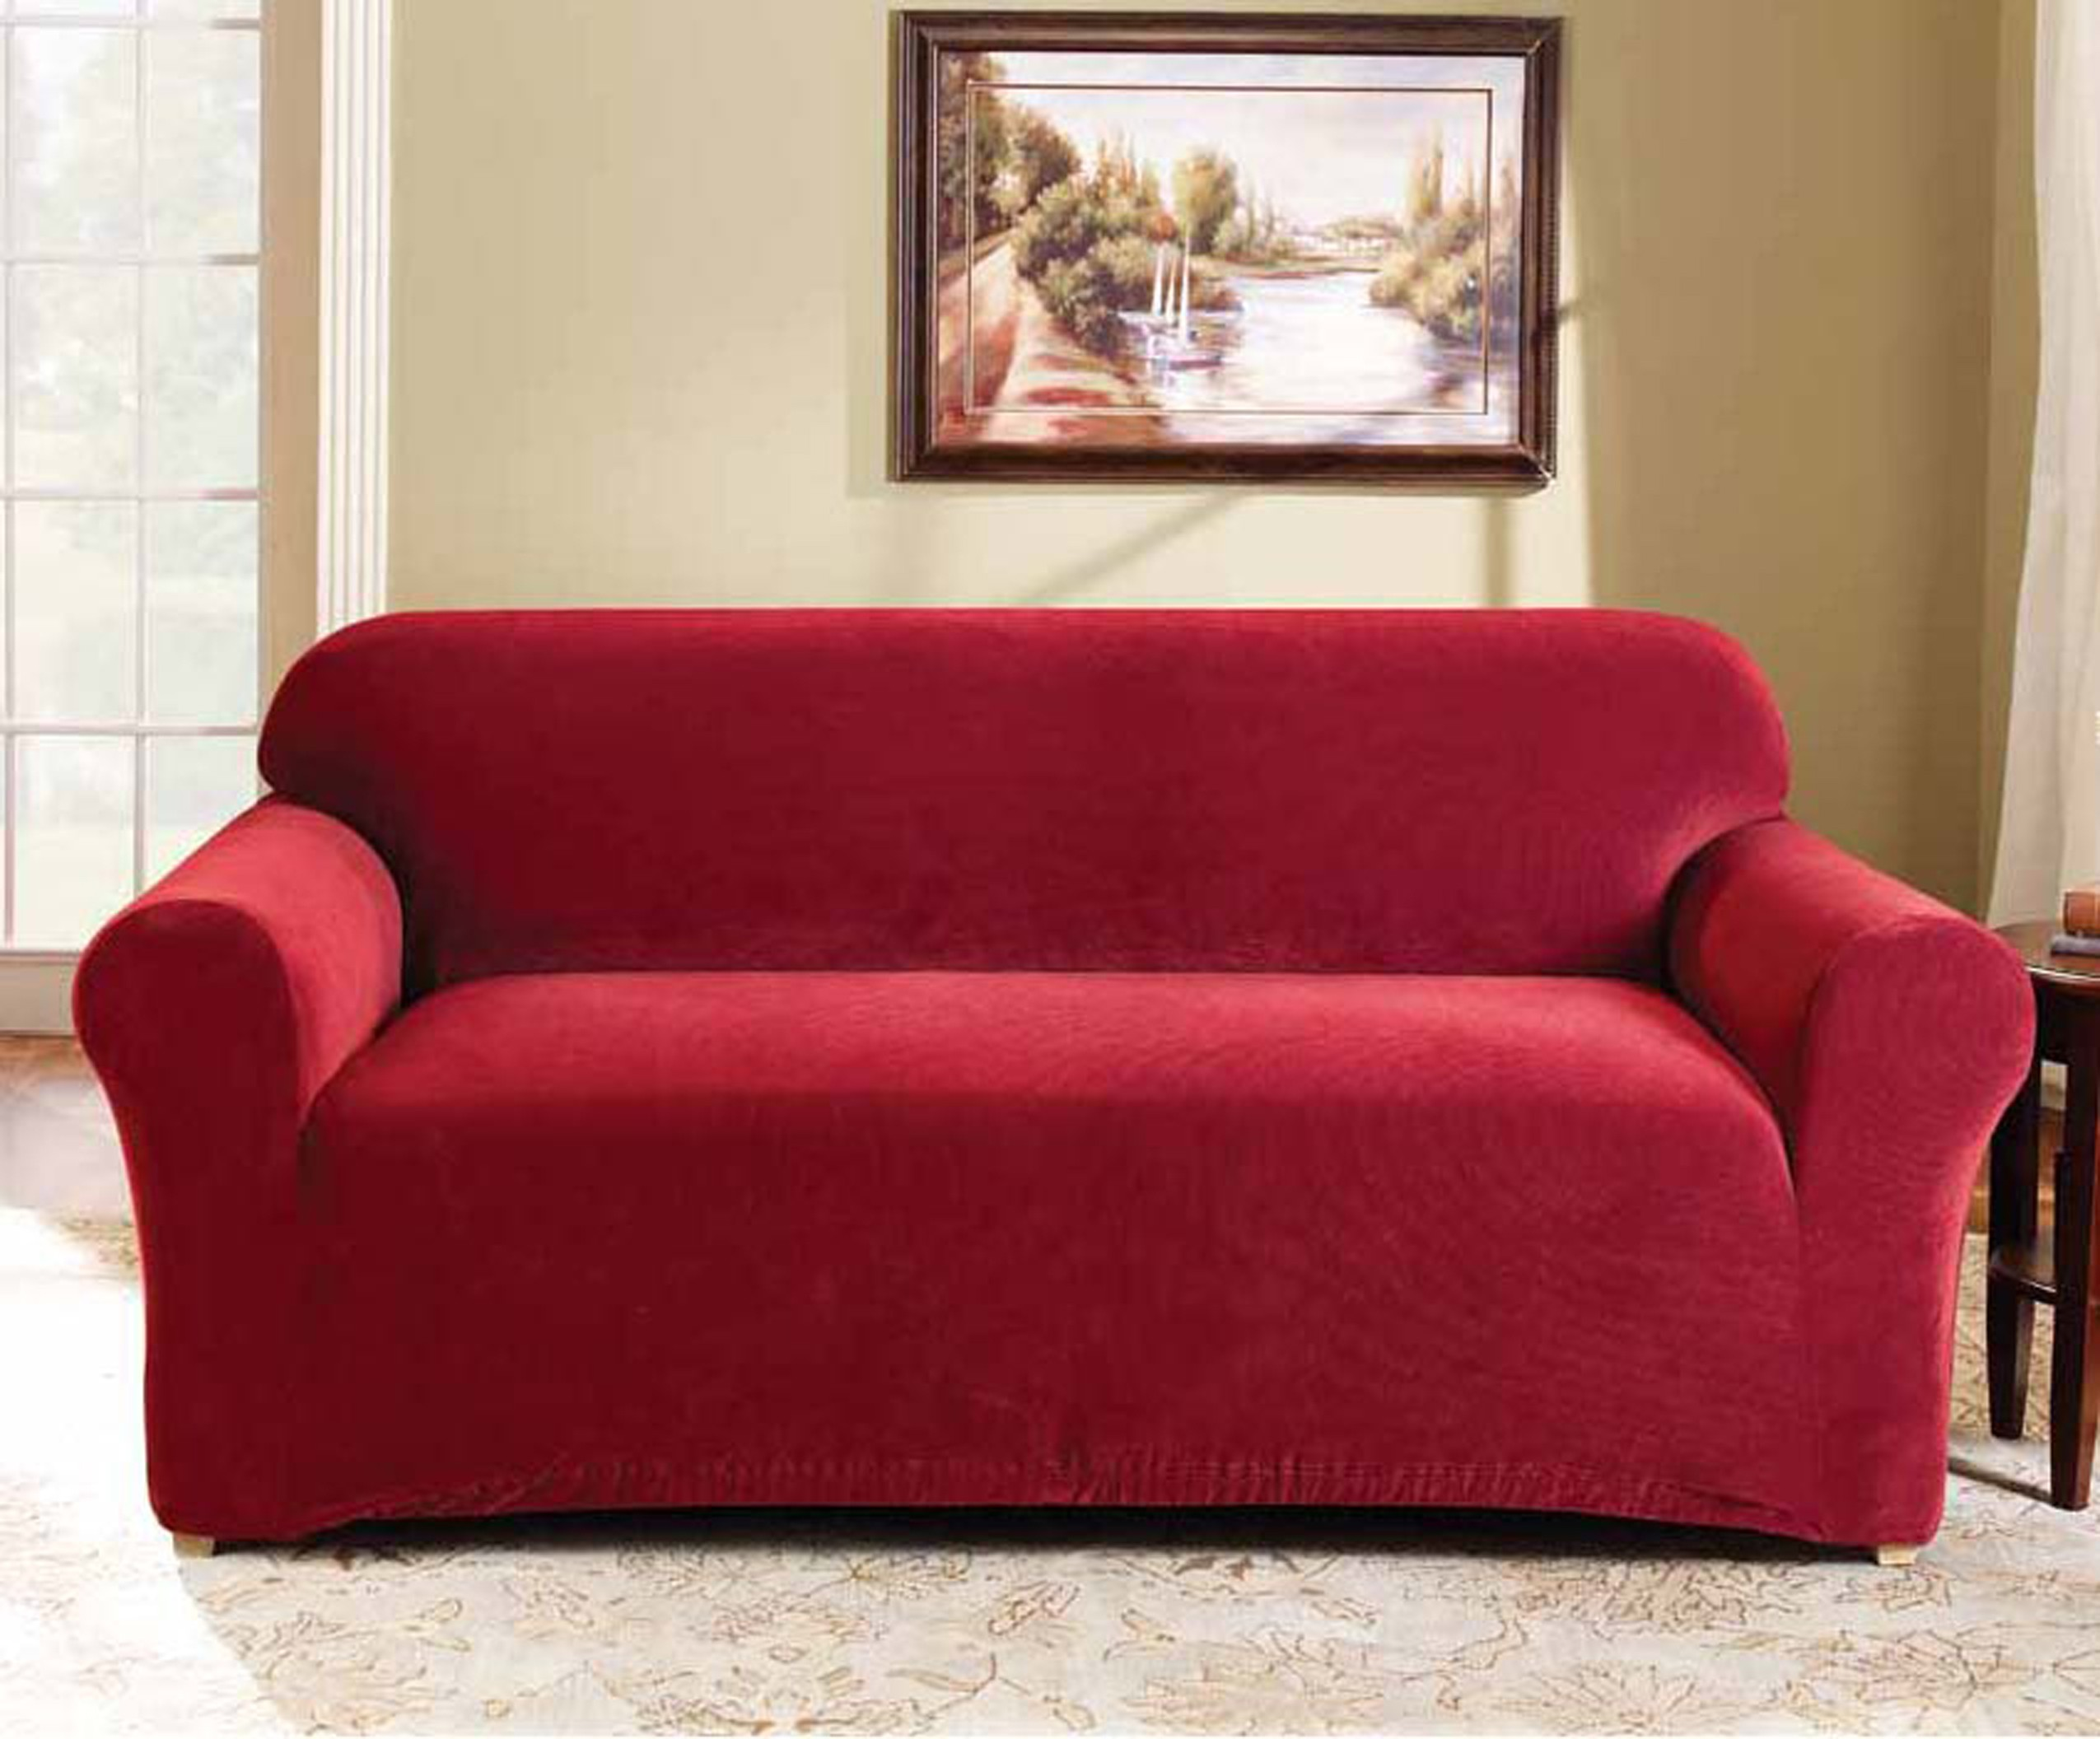 Kids Sofa Australia Red 2 Seater Couch Cover By Surefit Couch Covers Best Price Linen